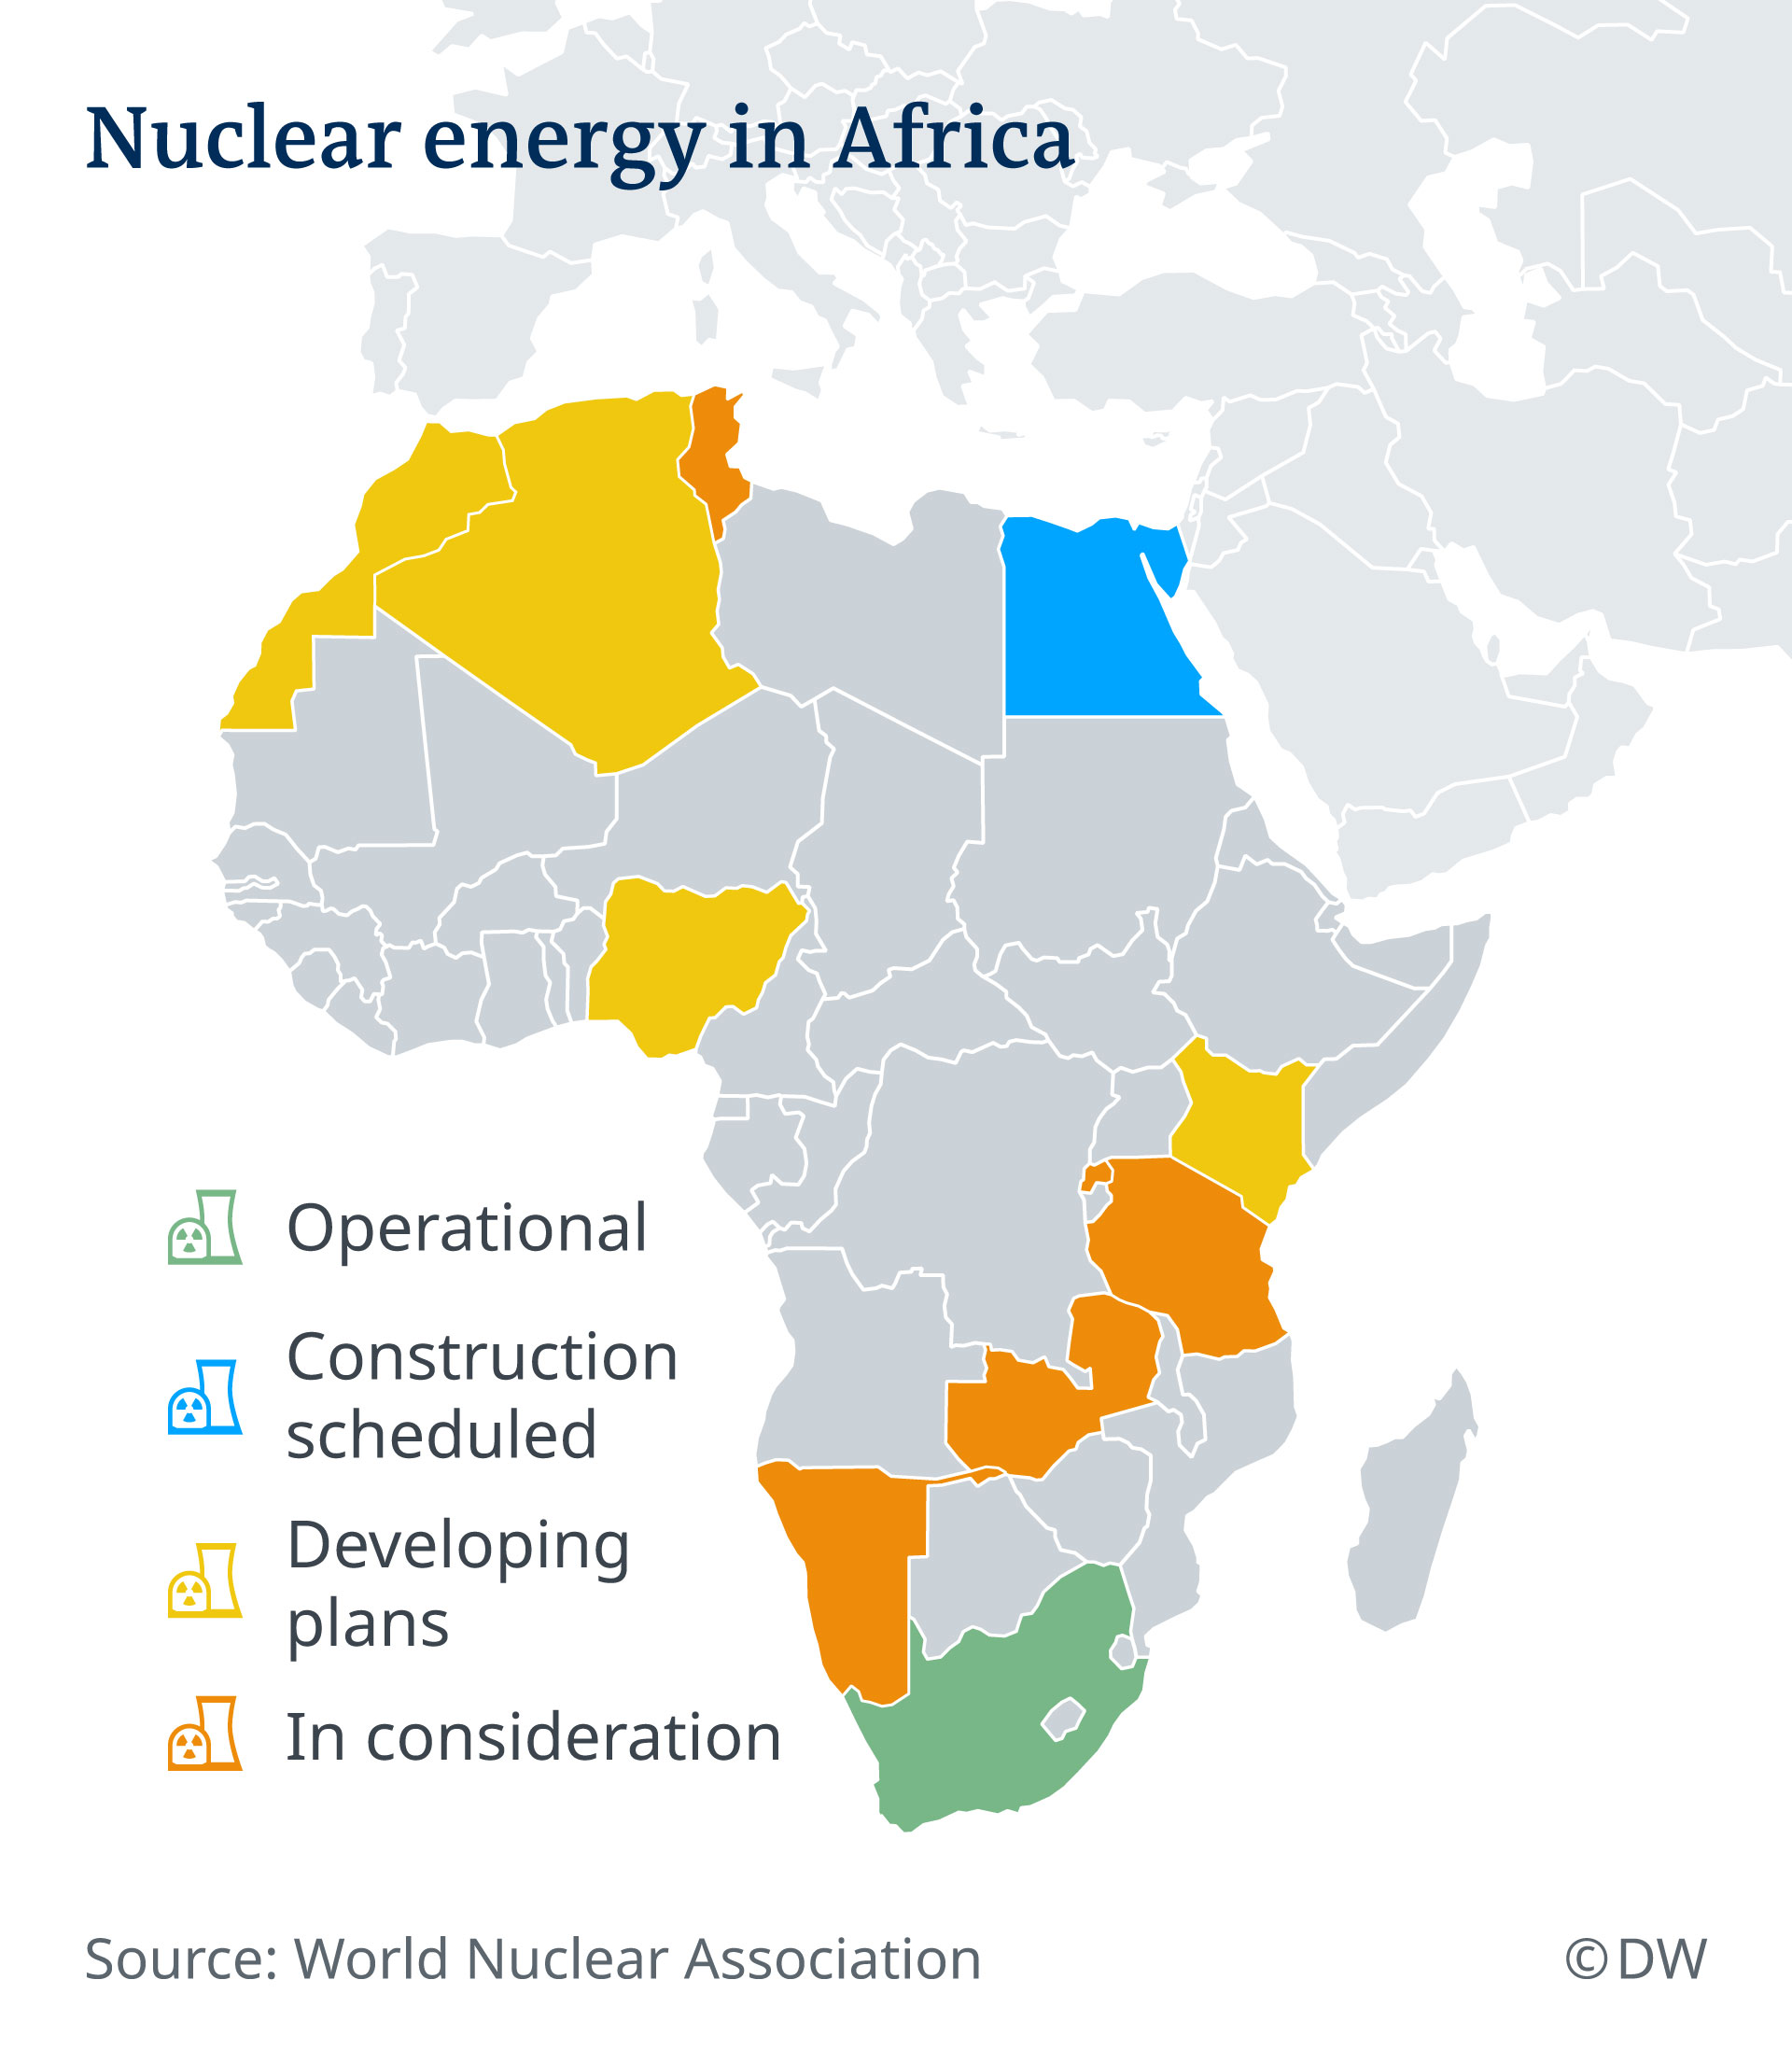 Different stages of nuclear energy in Africa, based on information from the World Nuclear Association